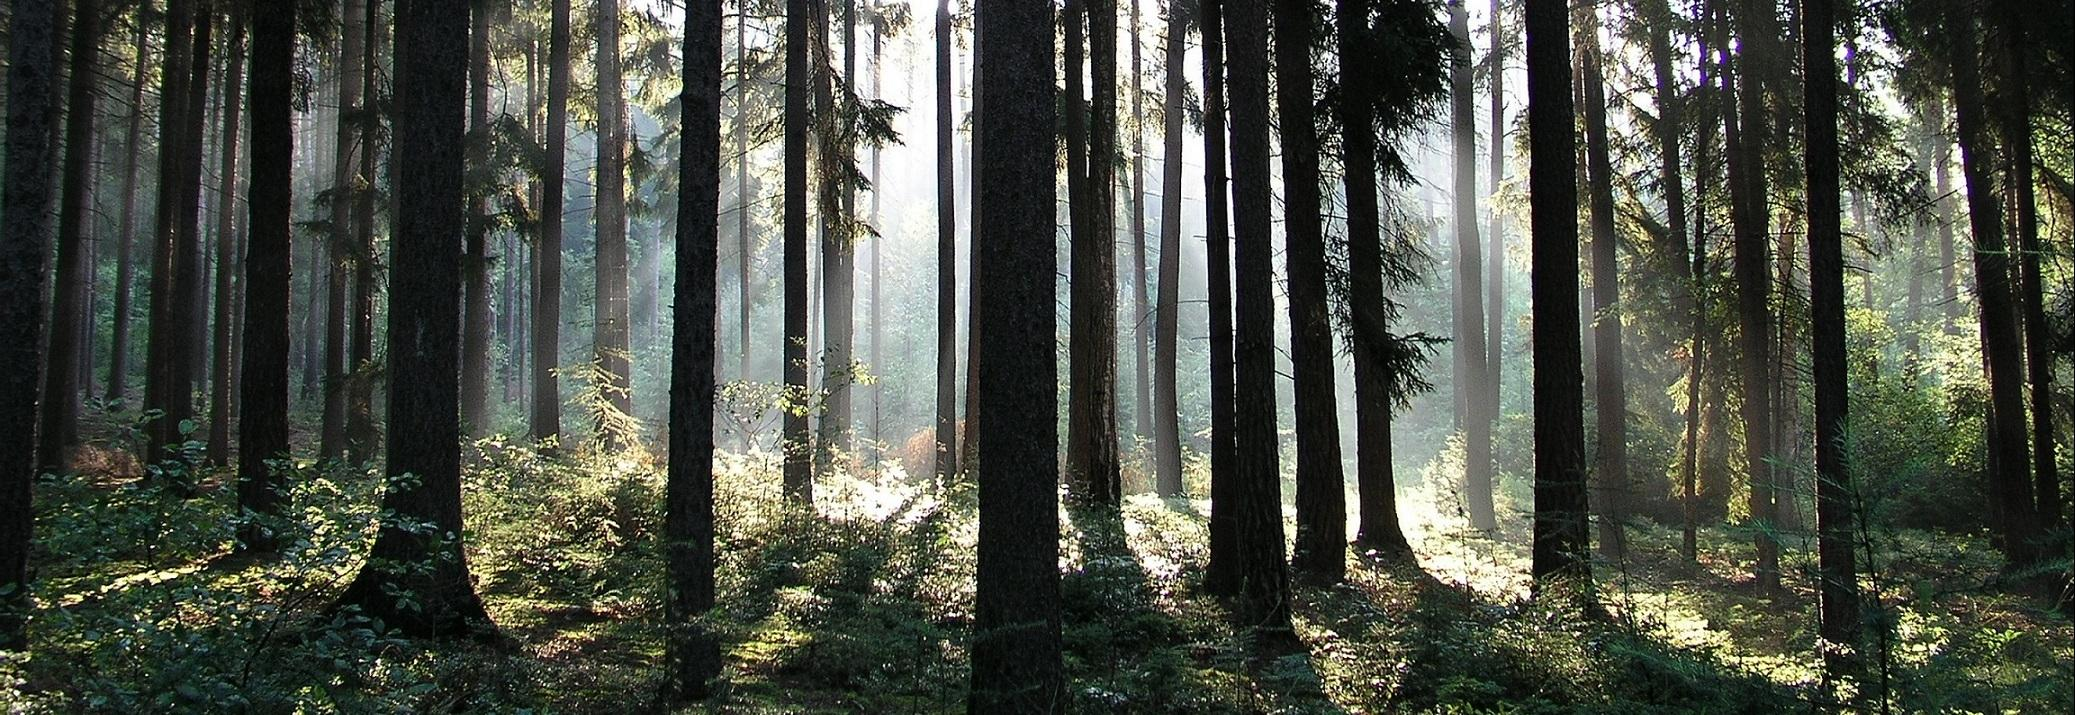 Natural forest © Forest Stewardship Council, Milan Reíka